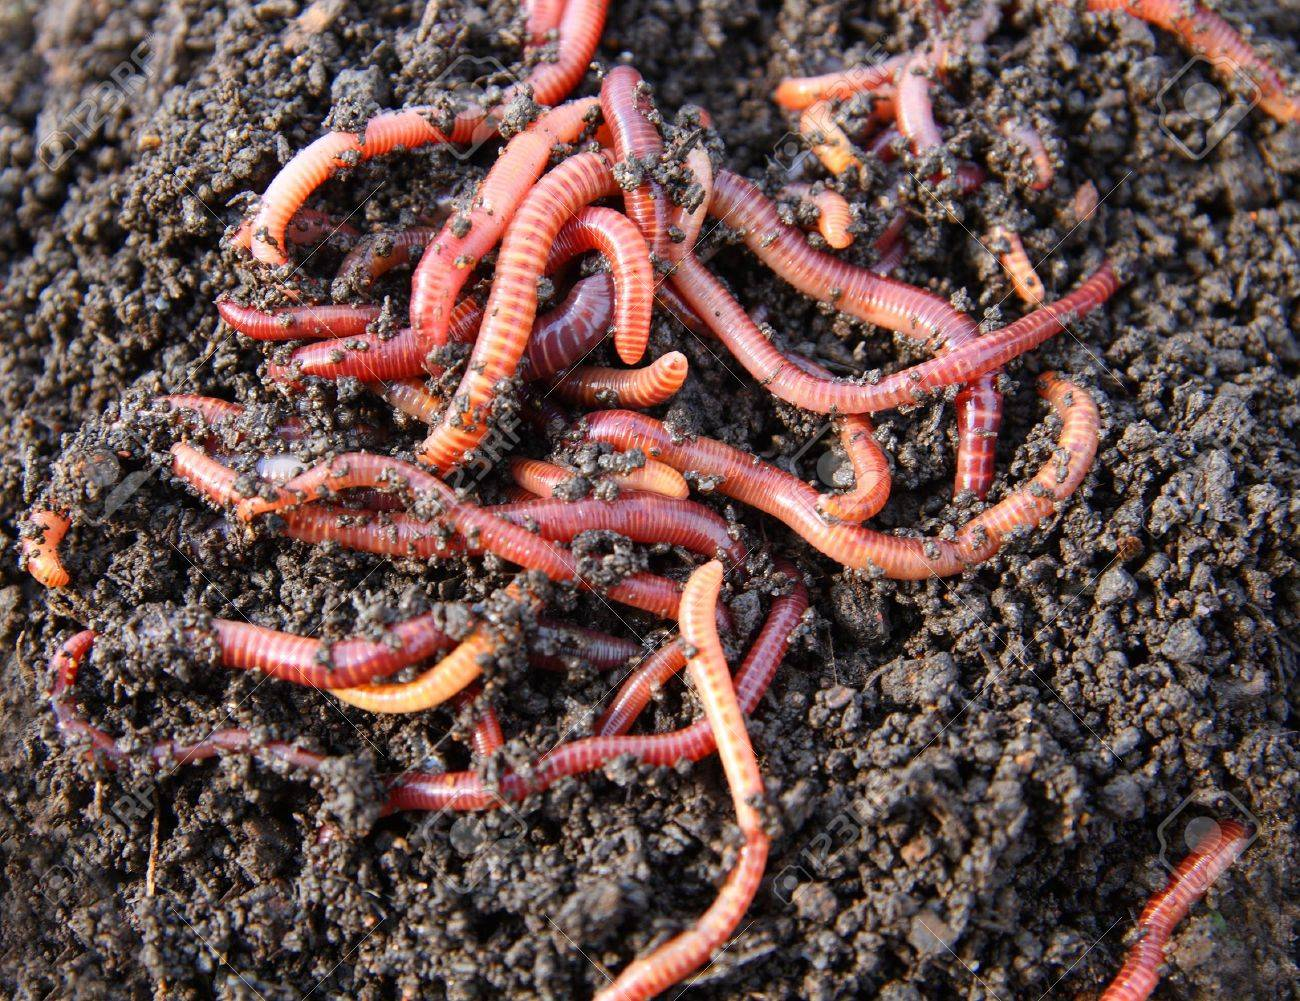 red worms in compost - bait for fishing stock photo, picture and, Fly Fishing Bait